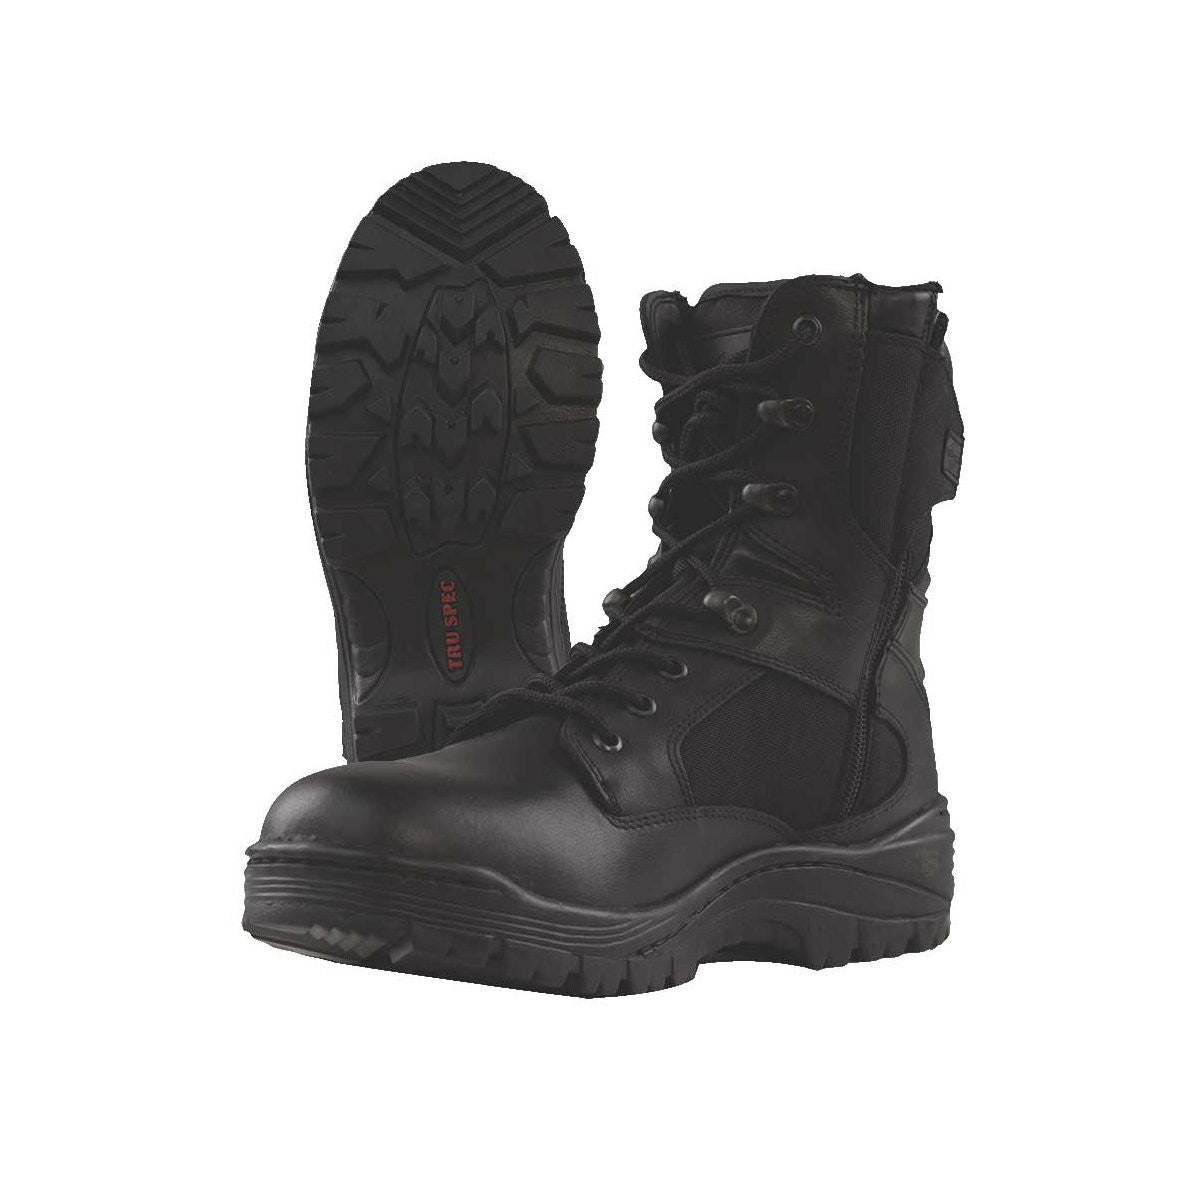 "Tru-Spec Tac Assault 9"" Side Zip Boots Black - Indy Army Navy"